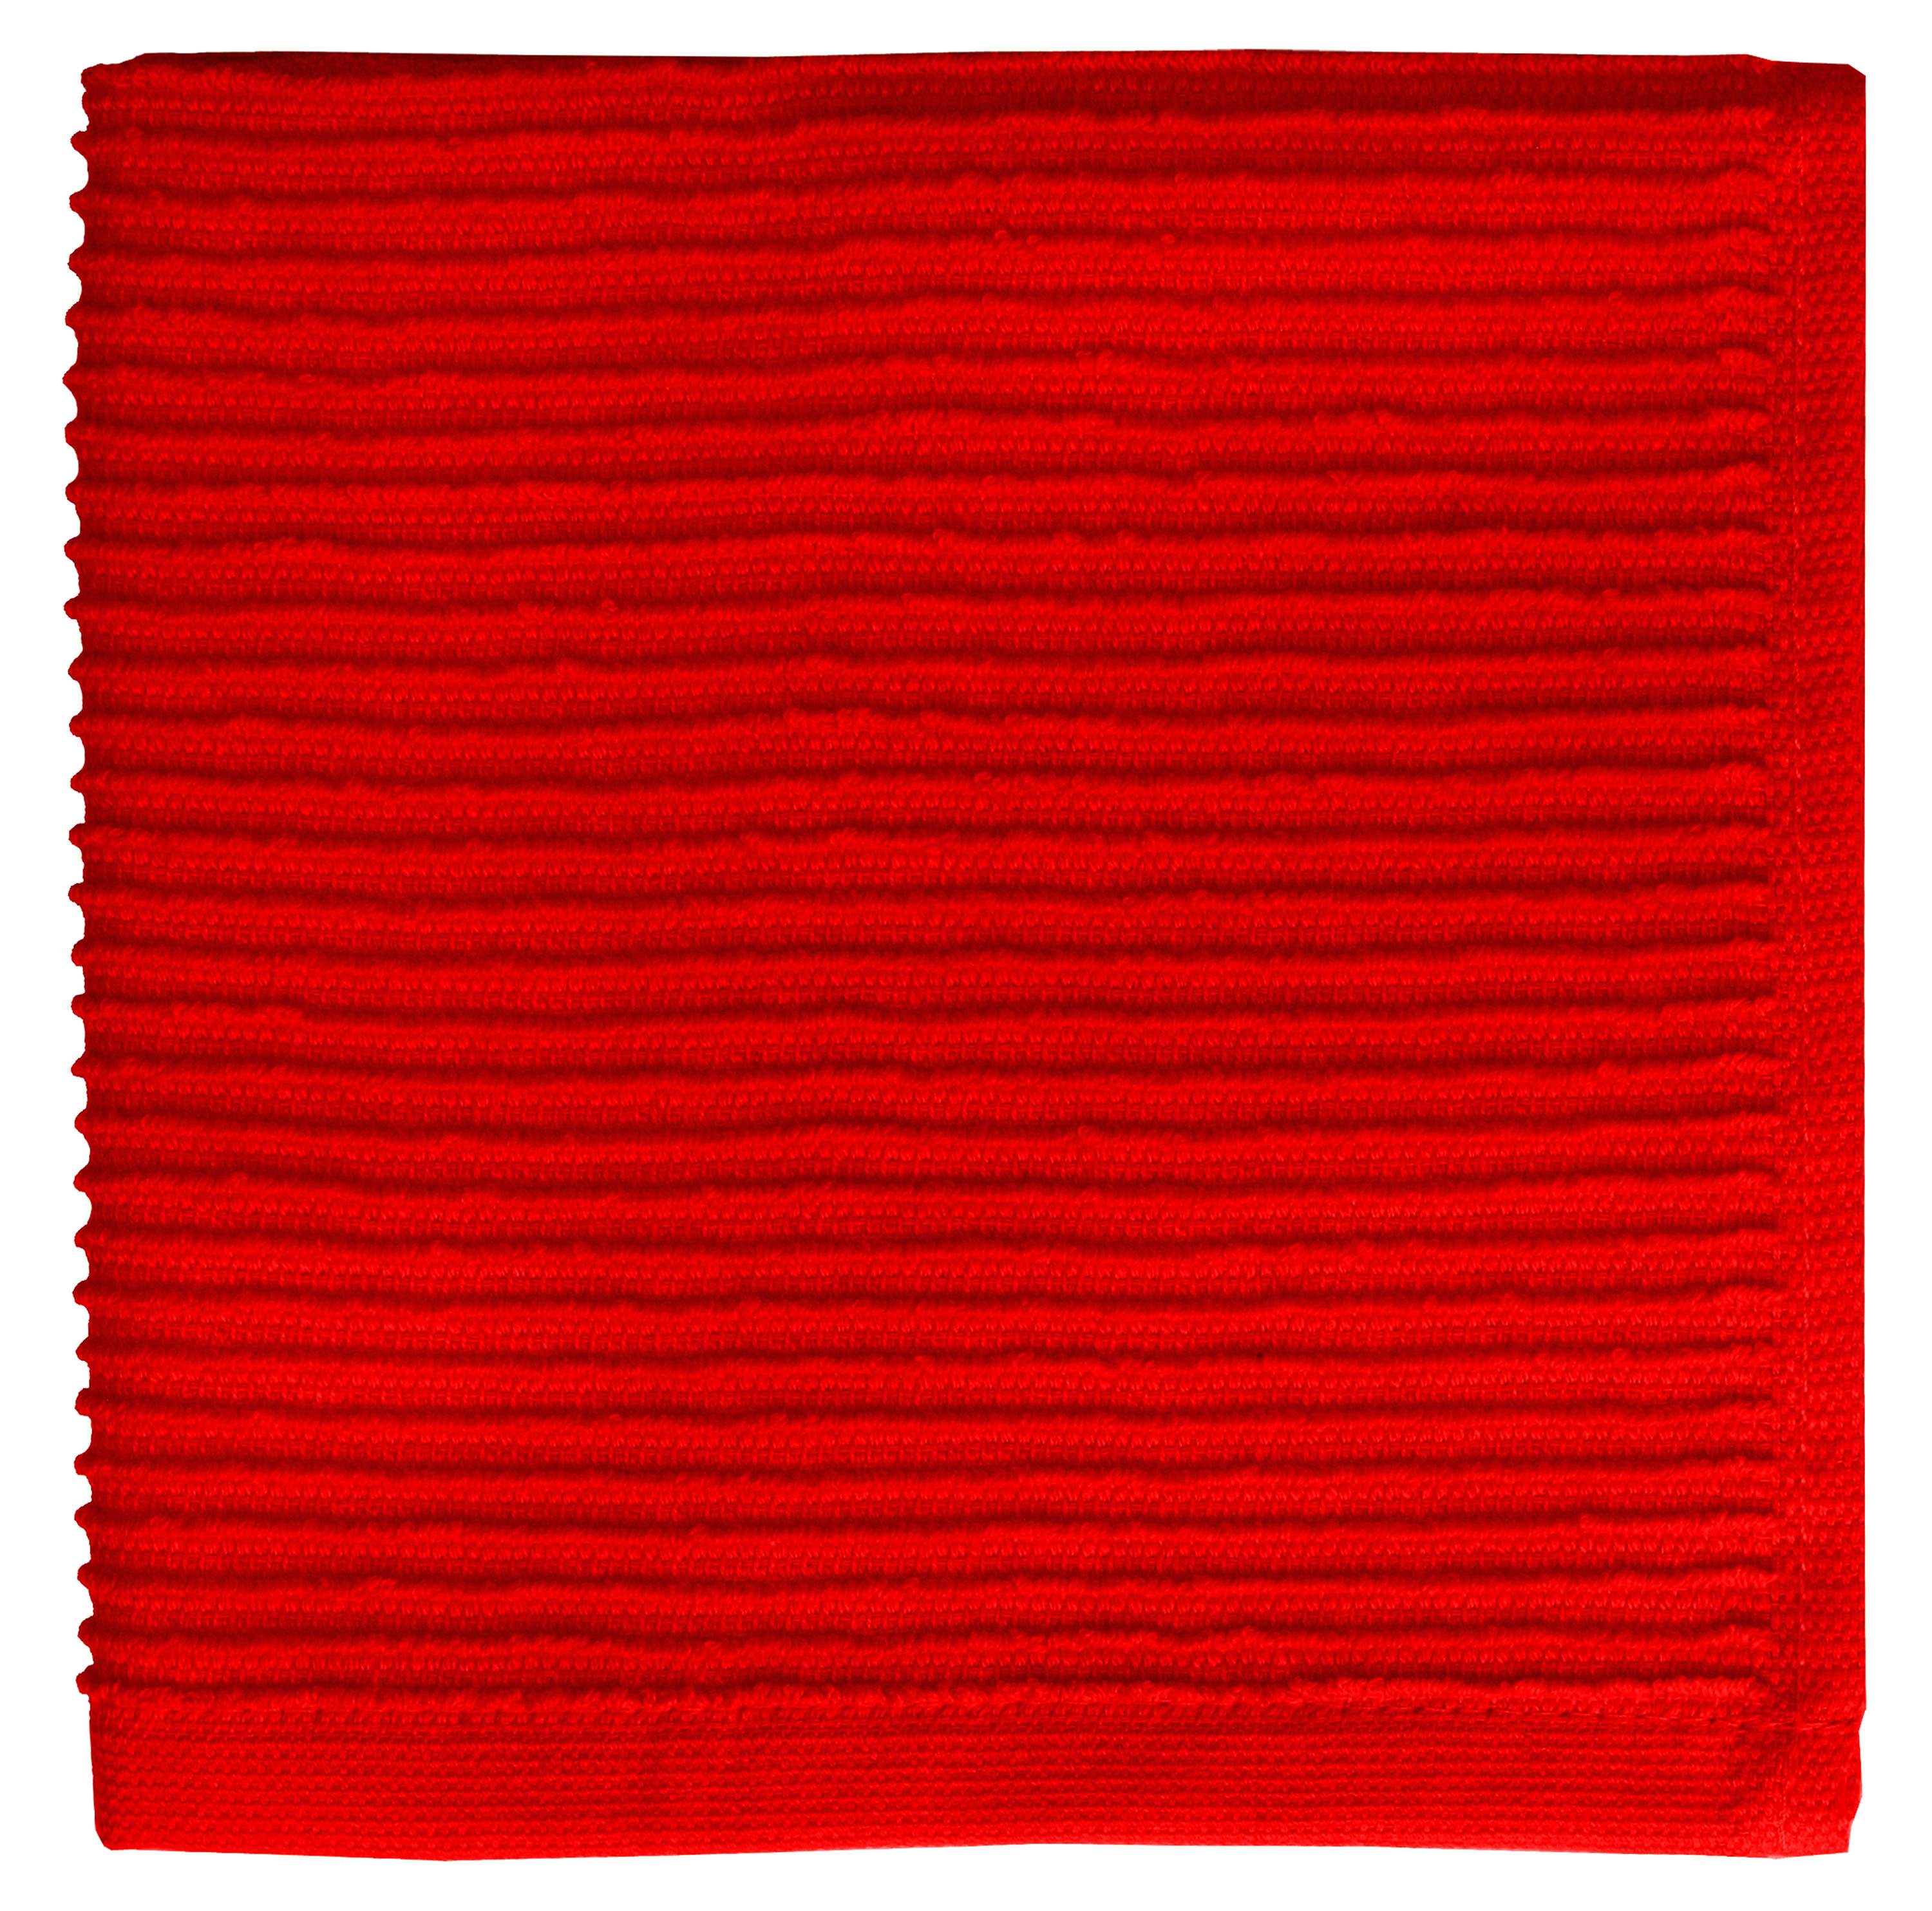 MUkitchen Cotton Ridged Cloth - Ruby Set of 2